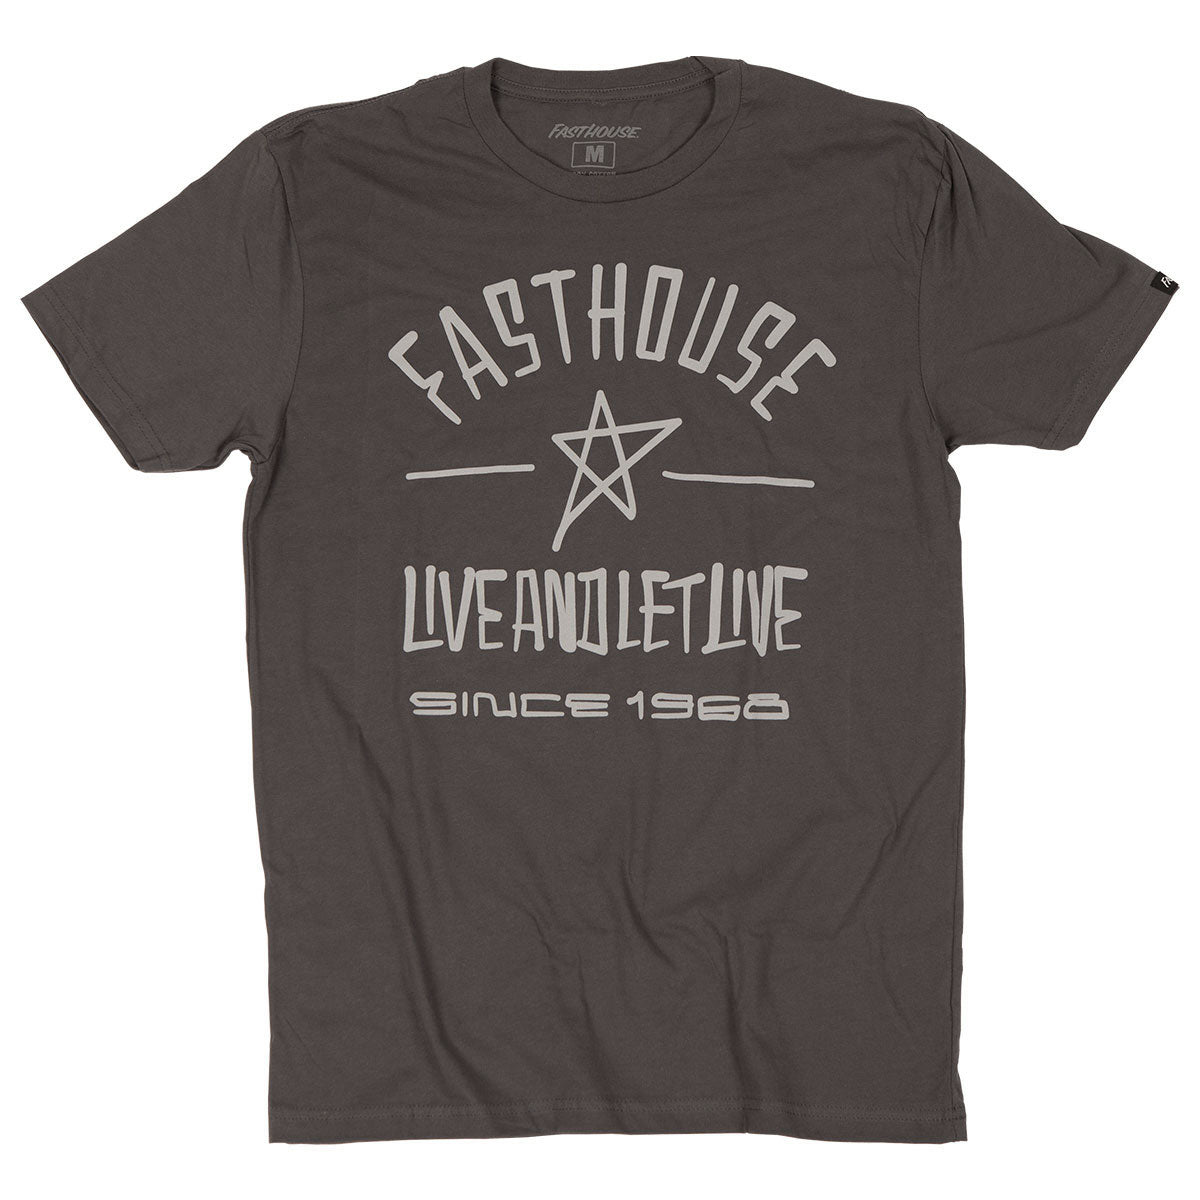 Fasthouse - Saturday Tee - Heavy Metal